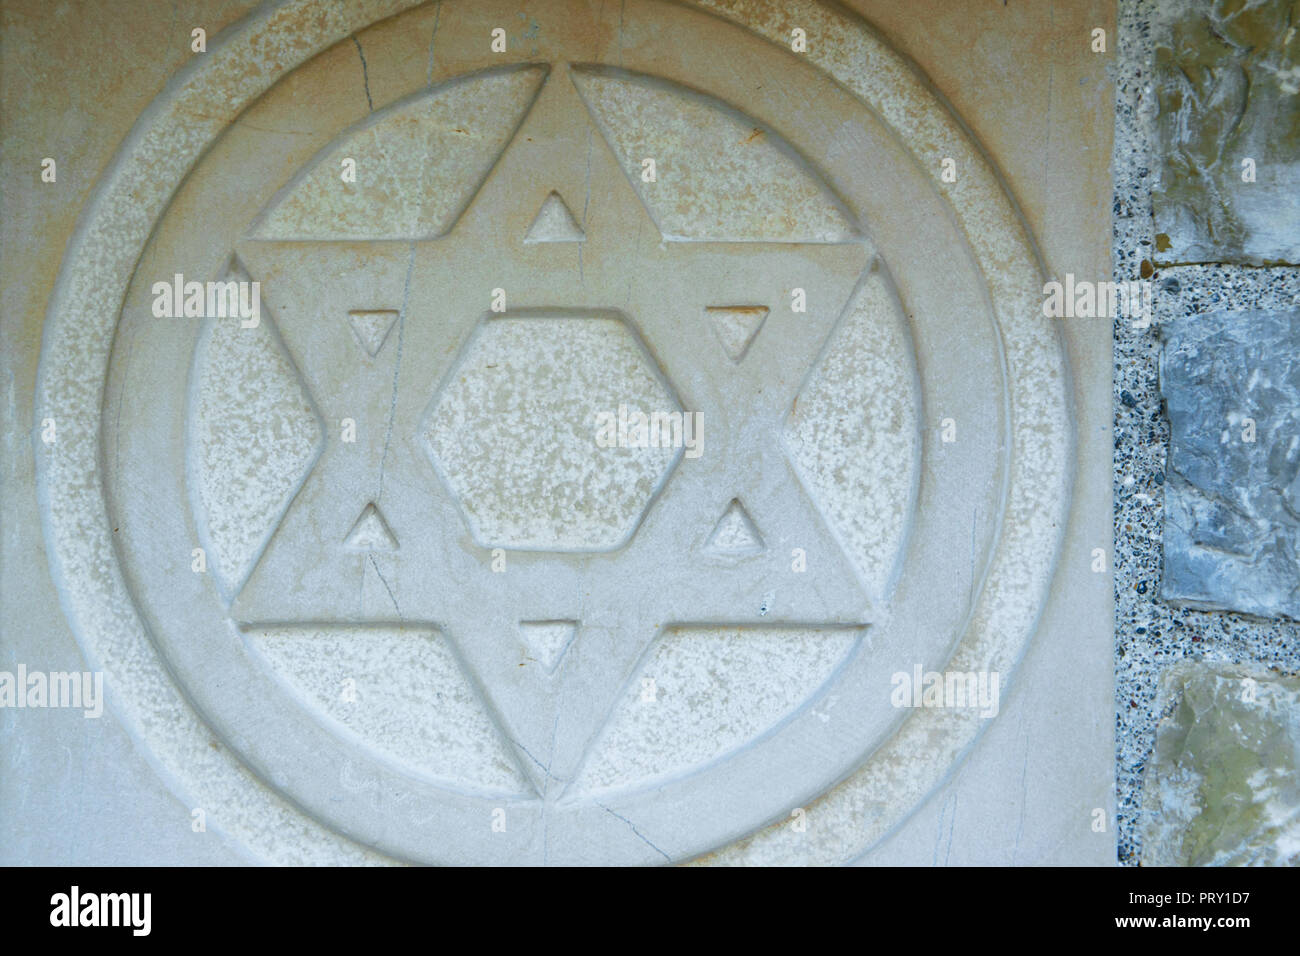 the-star-of-david-engraved-in-the-marble-traditional-symbol-of-modern-jewish-identity-and-judaism-PRY1D7.jpg